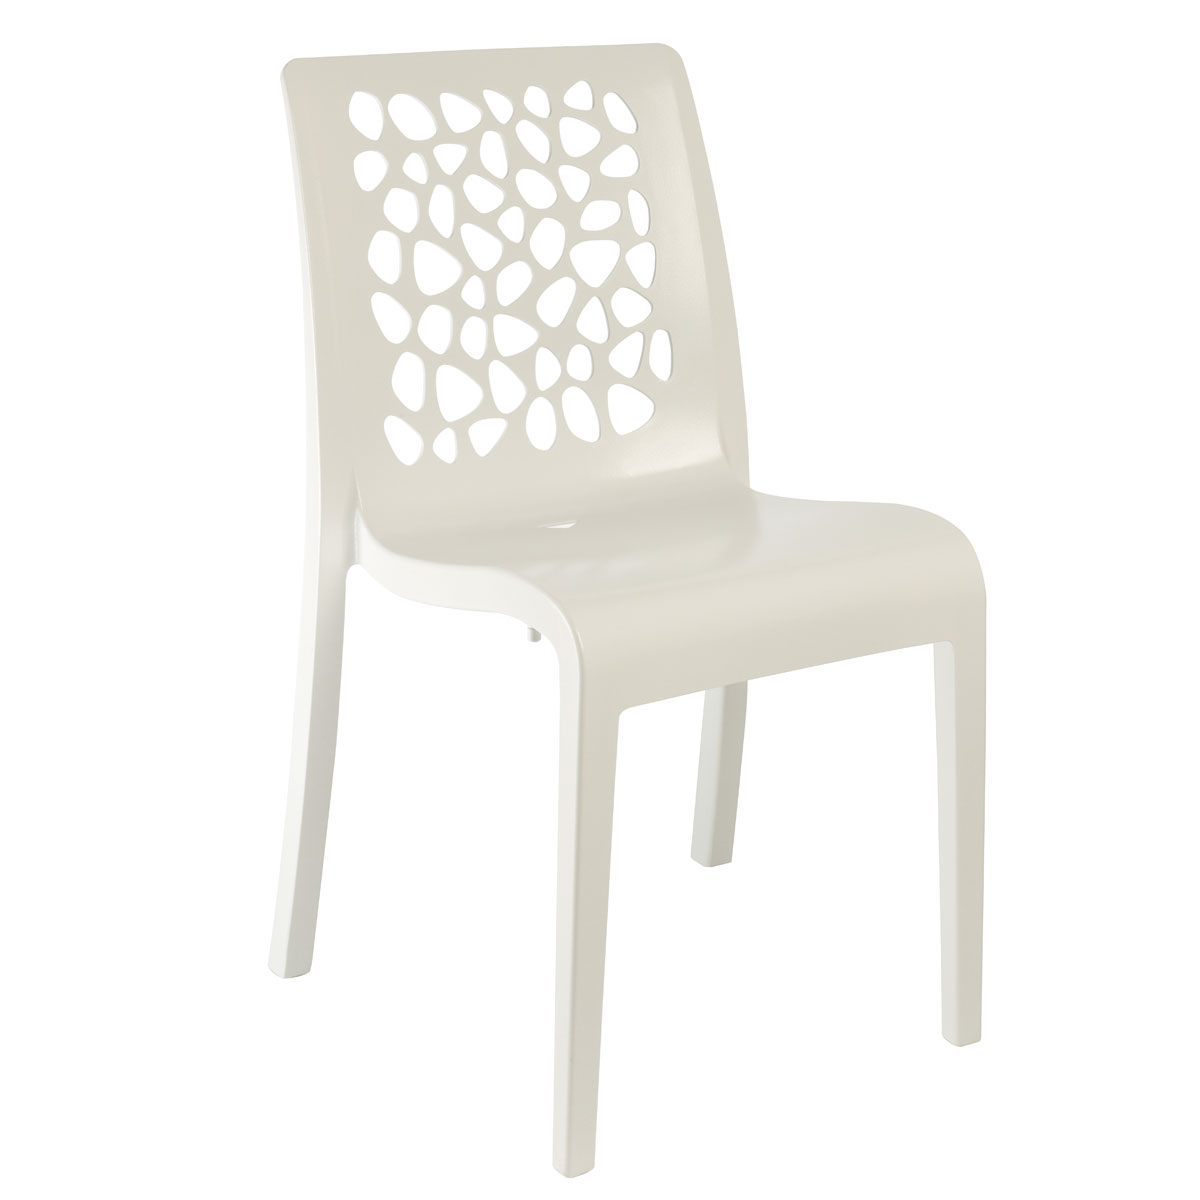 Chaise tulipe pas cher chaise tulipe pas cher with chaise for Chaise coque pas cher